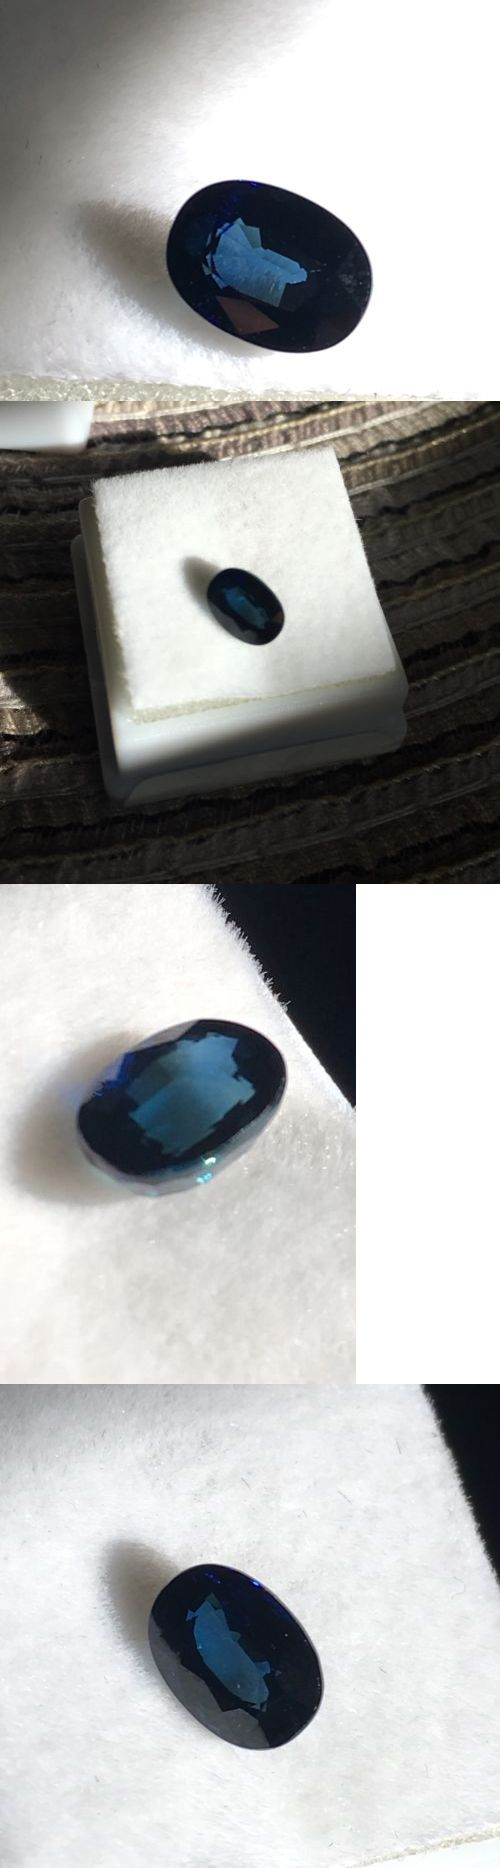 Natural Sapphires 4644: Blue Sapphire 1.35 Ct Oval Cut-Natural Sapphire! -> BUY IT NOW ONLY: $325 on eBay!